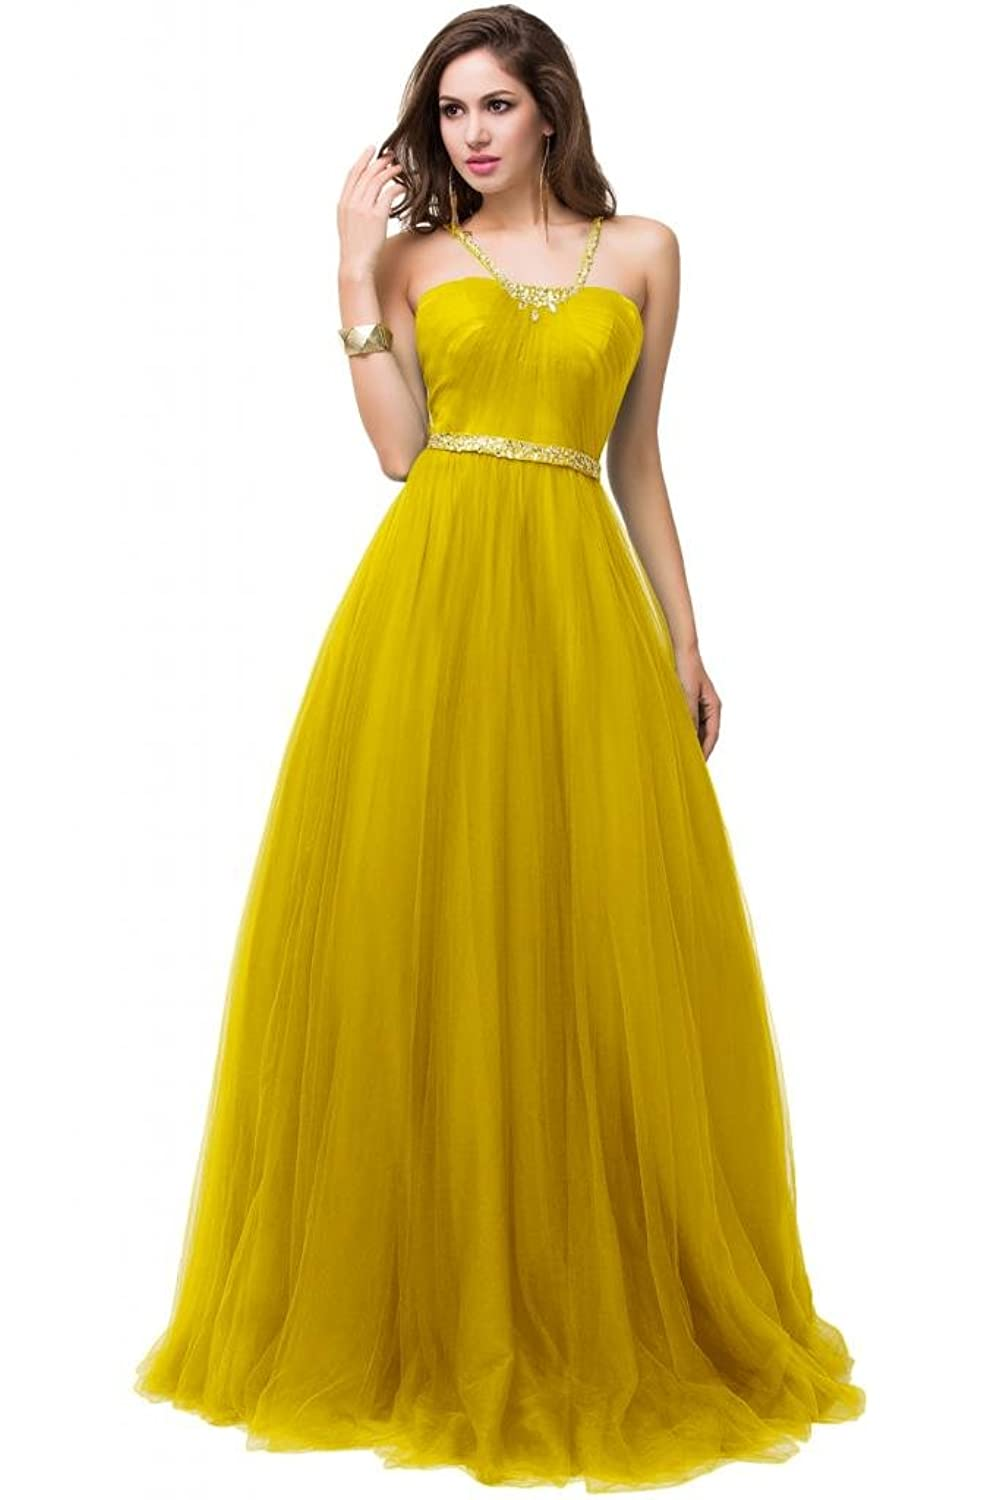 Sunvary Strapless Organza Tulle Open Back Sexy Prom Gowns Evening Dresses